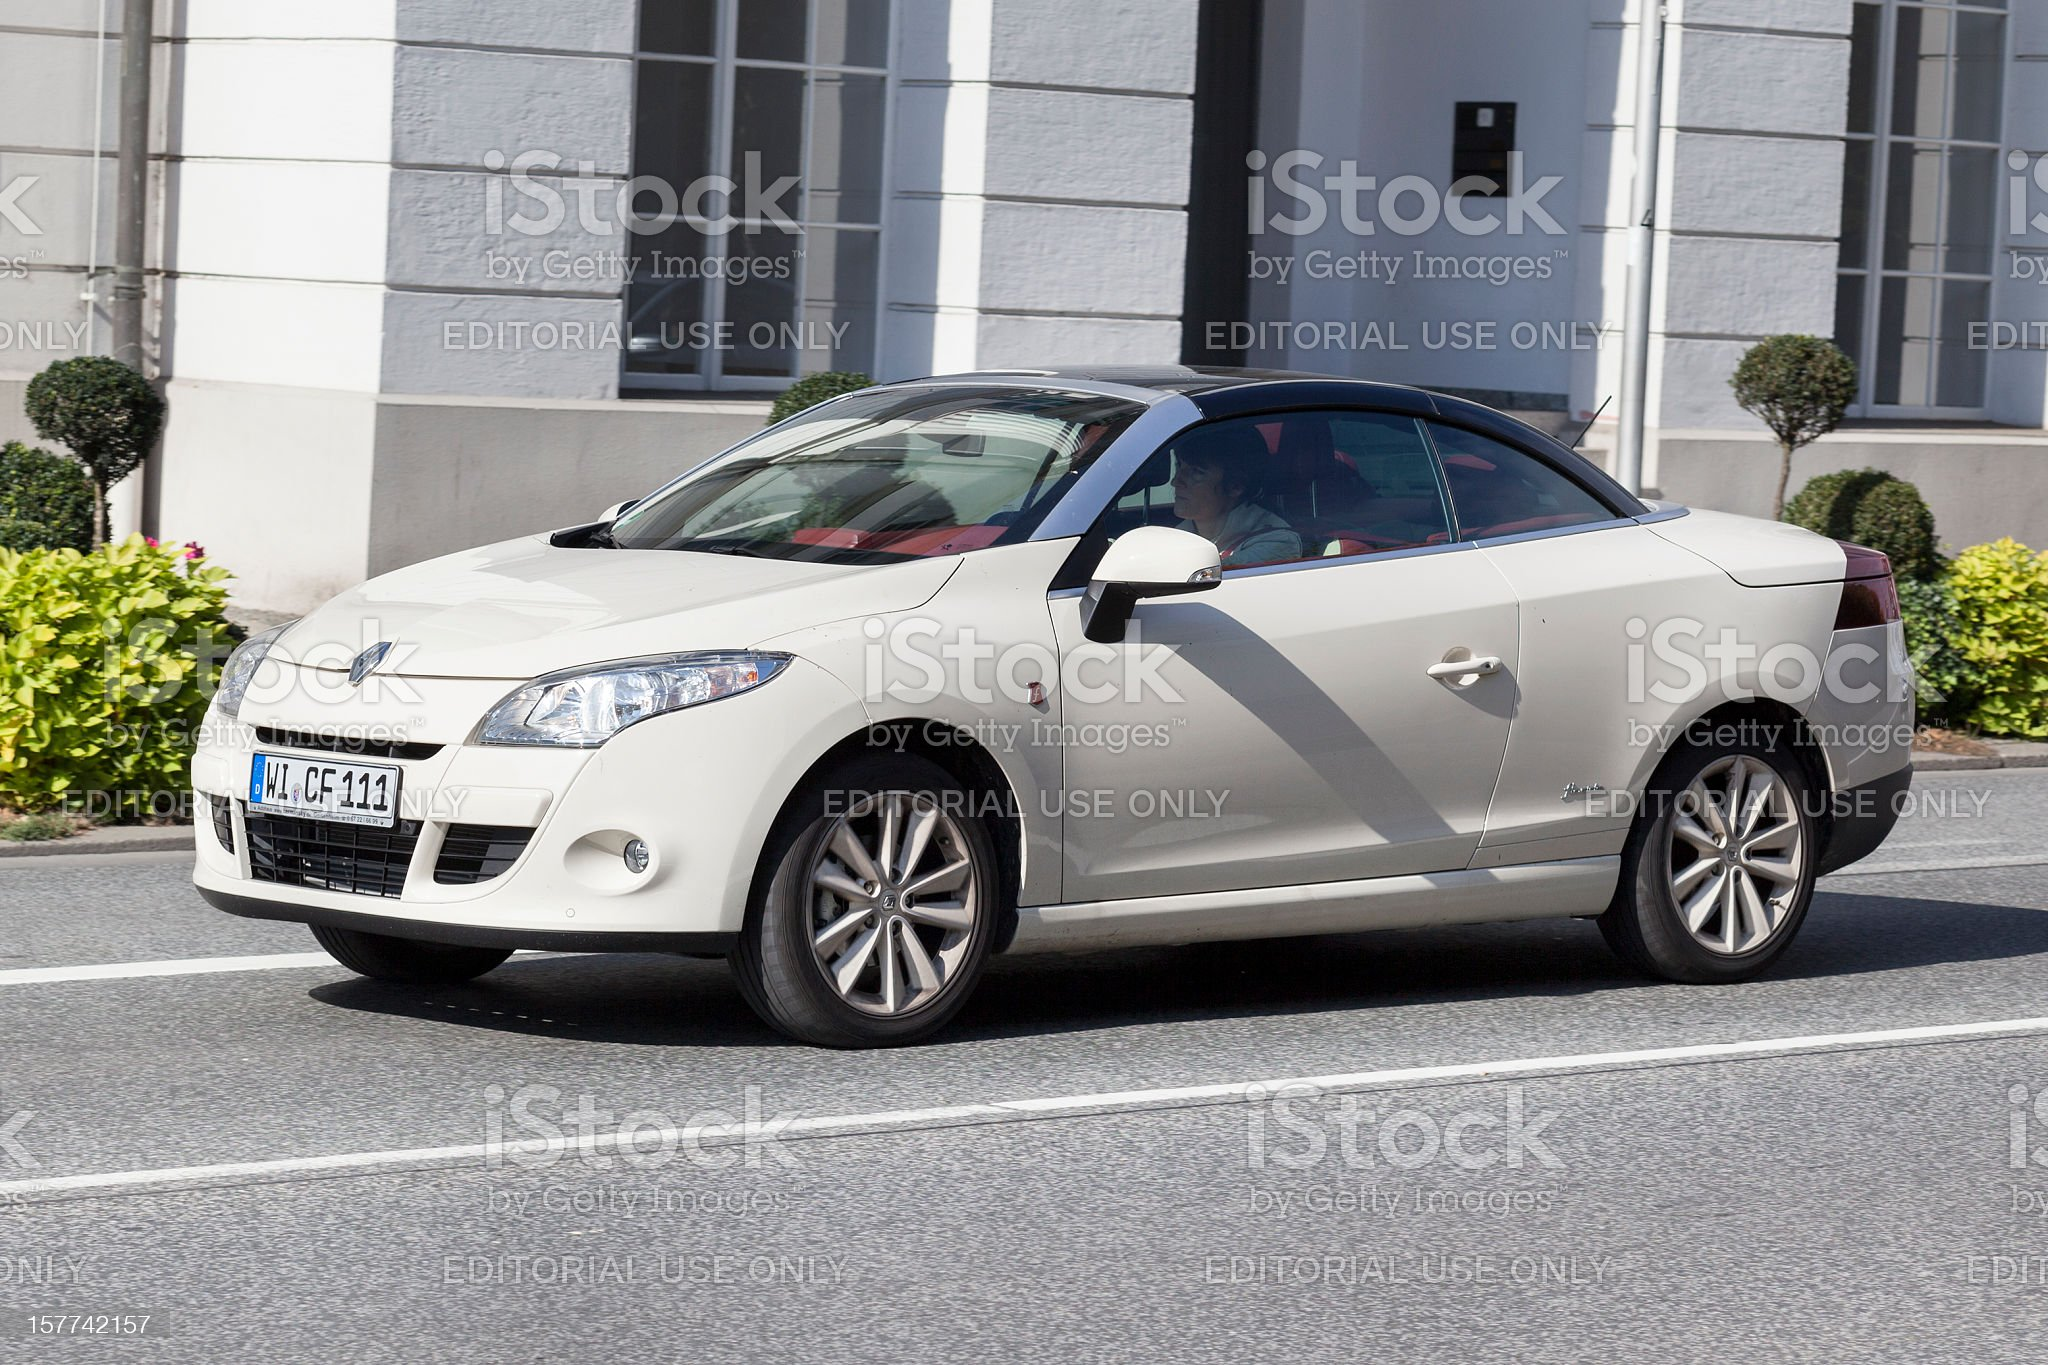 Renault Megane Coupe royalty-free stock photo